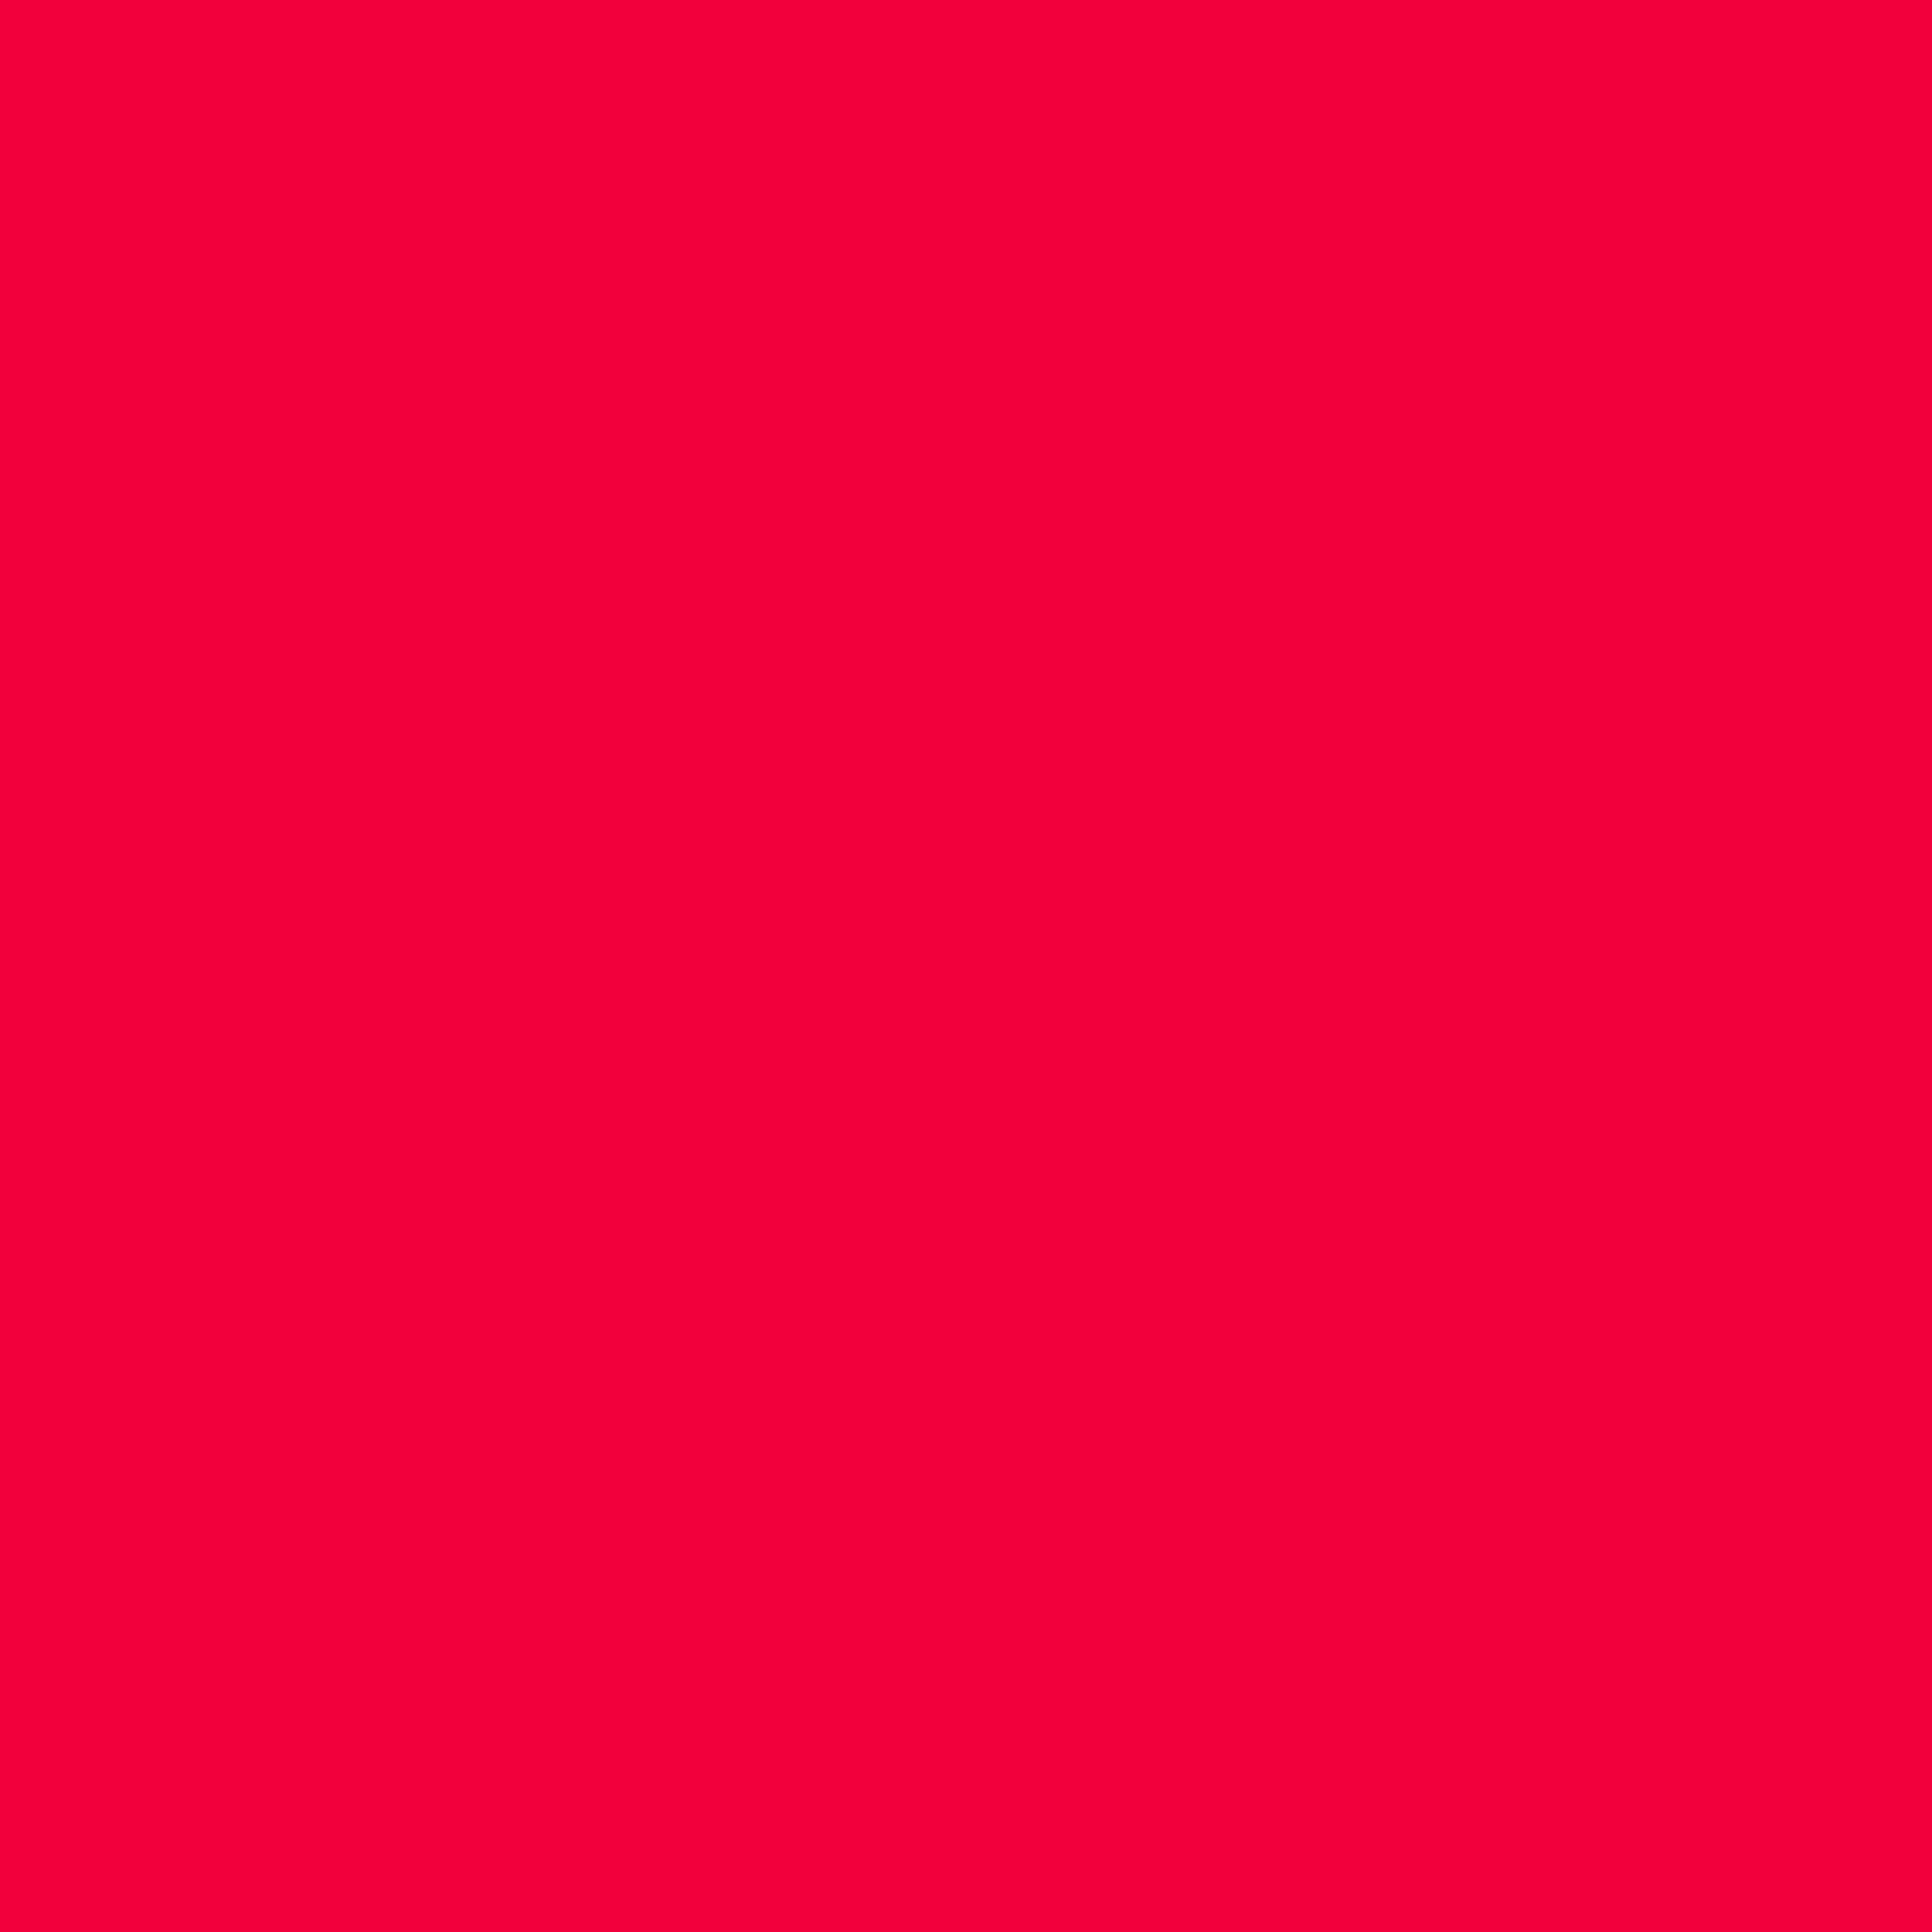 3600x3600 Red Munsell Solid Color Background